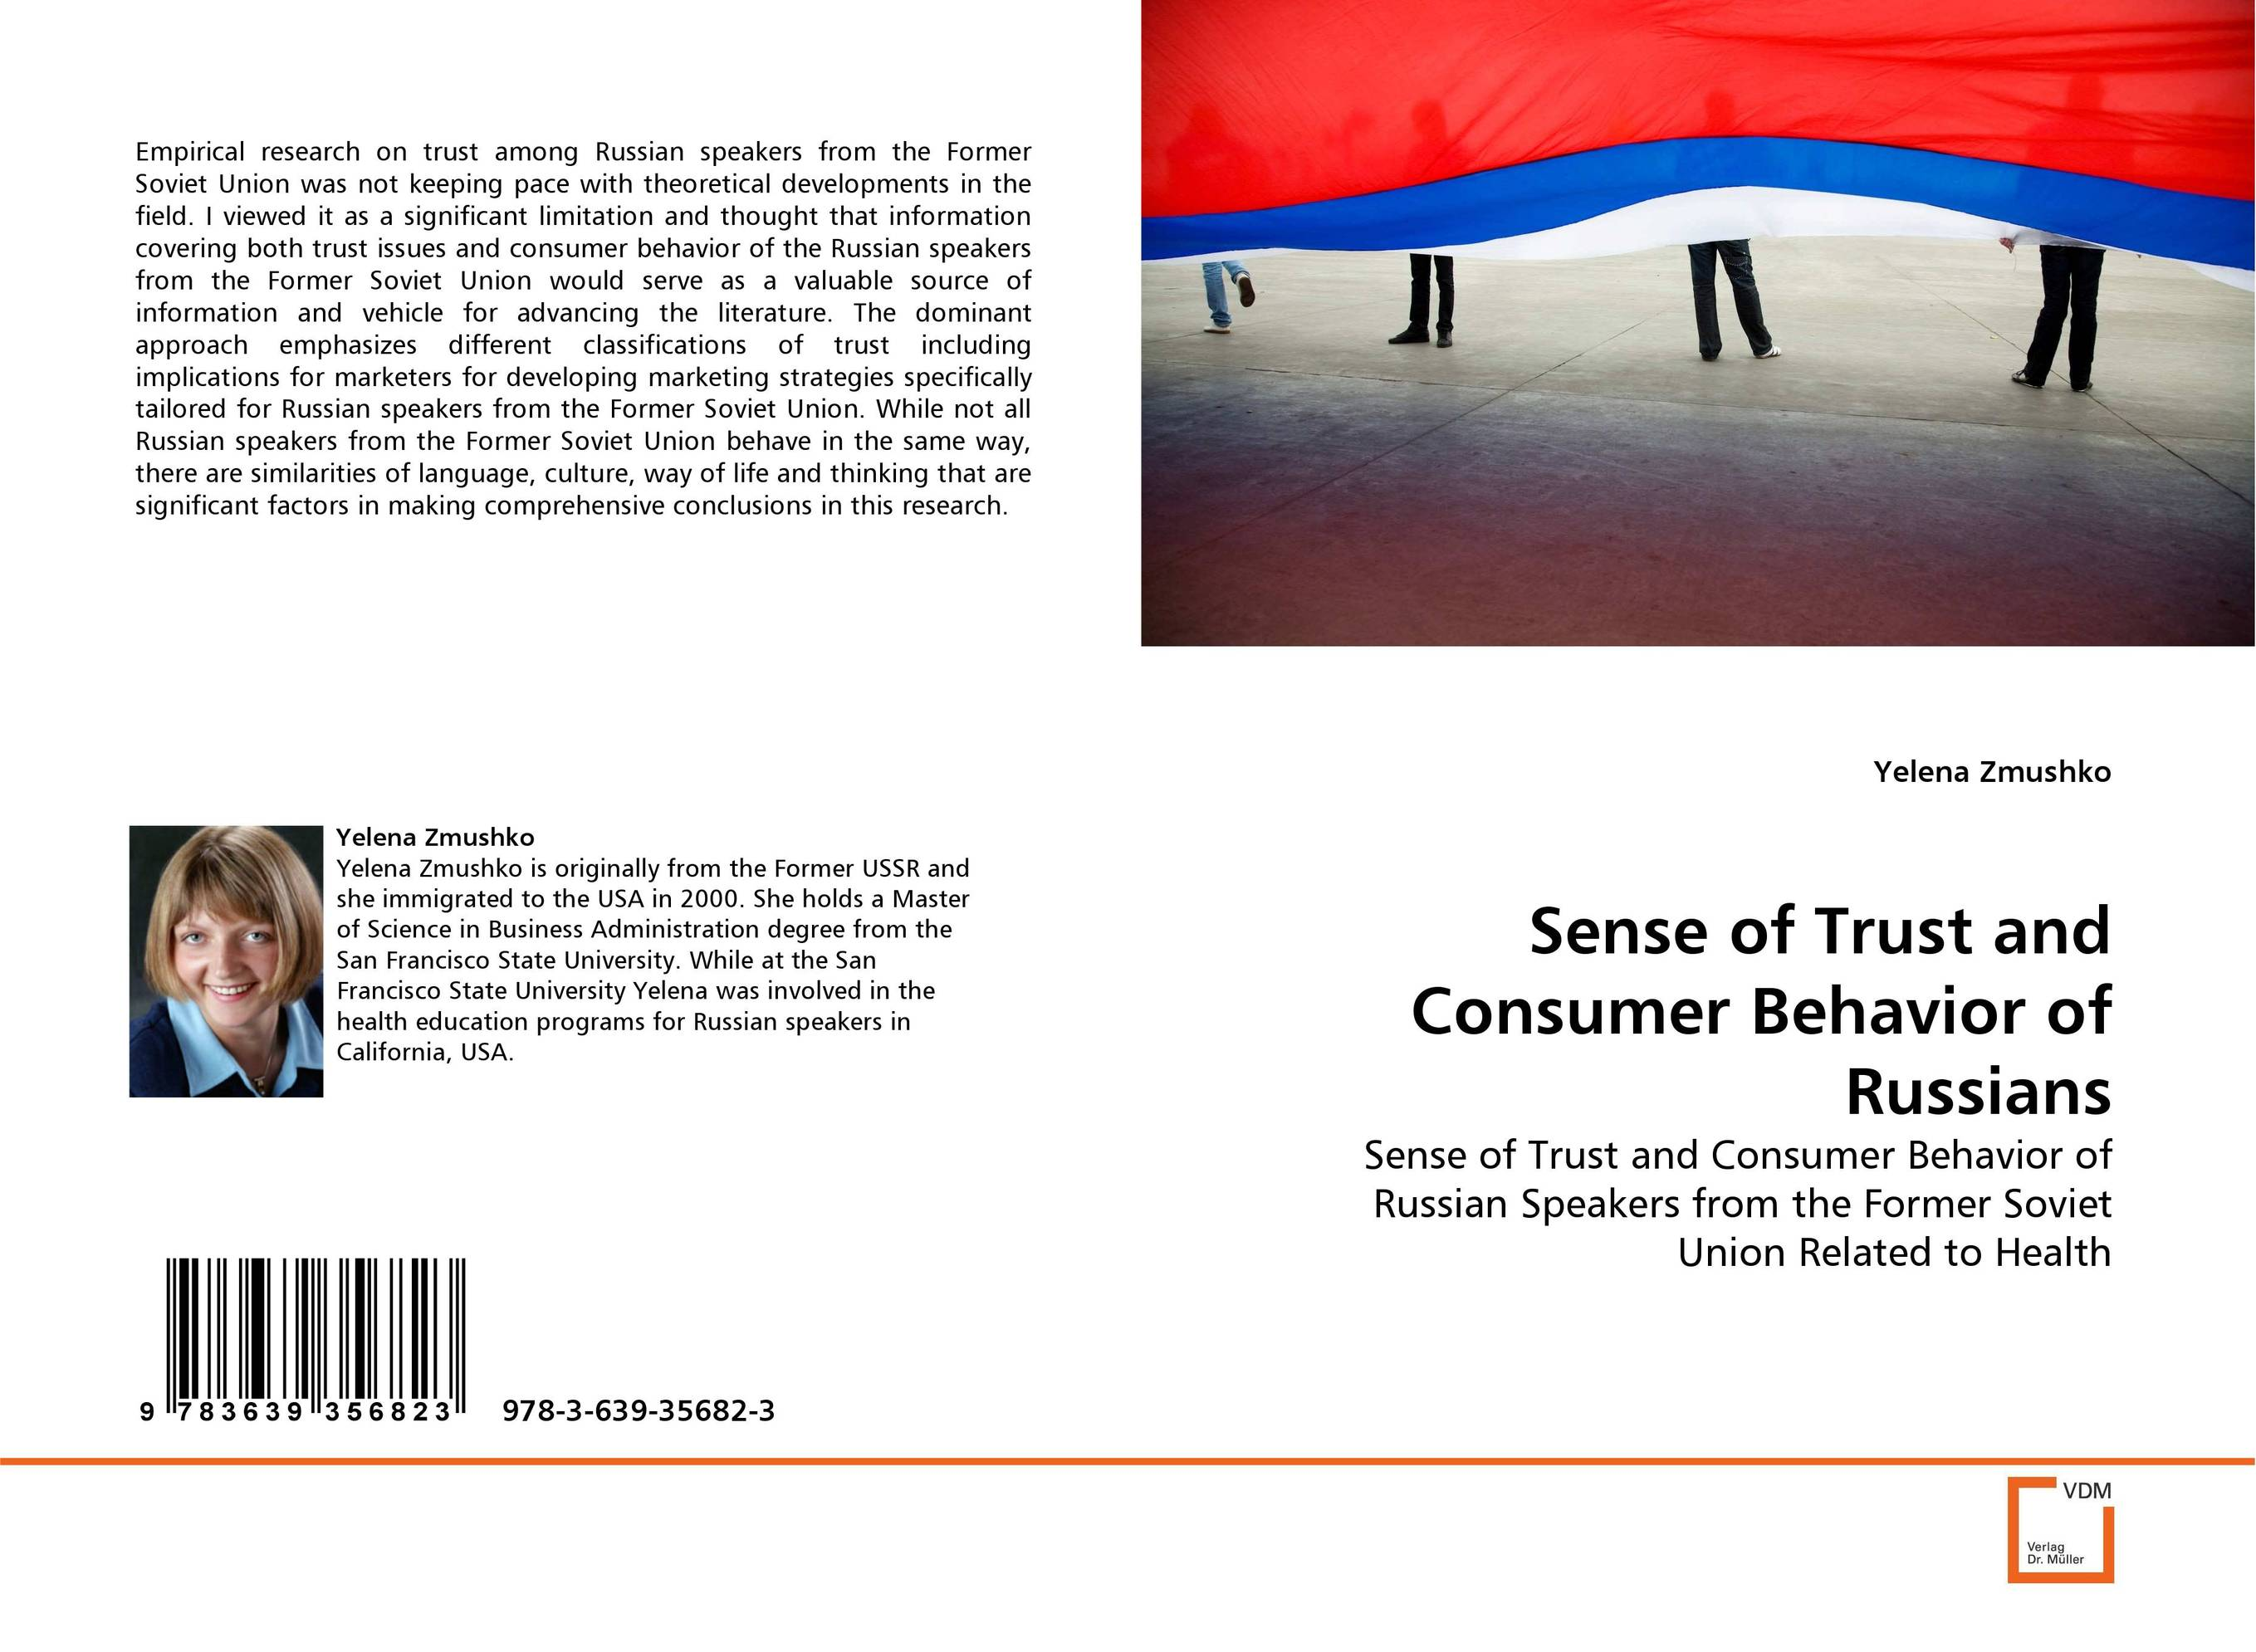 Sense of Trust and Consumer Behavior of Russians bremzen a mastering the art of soviet cooking